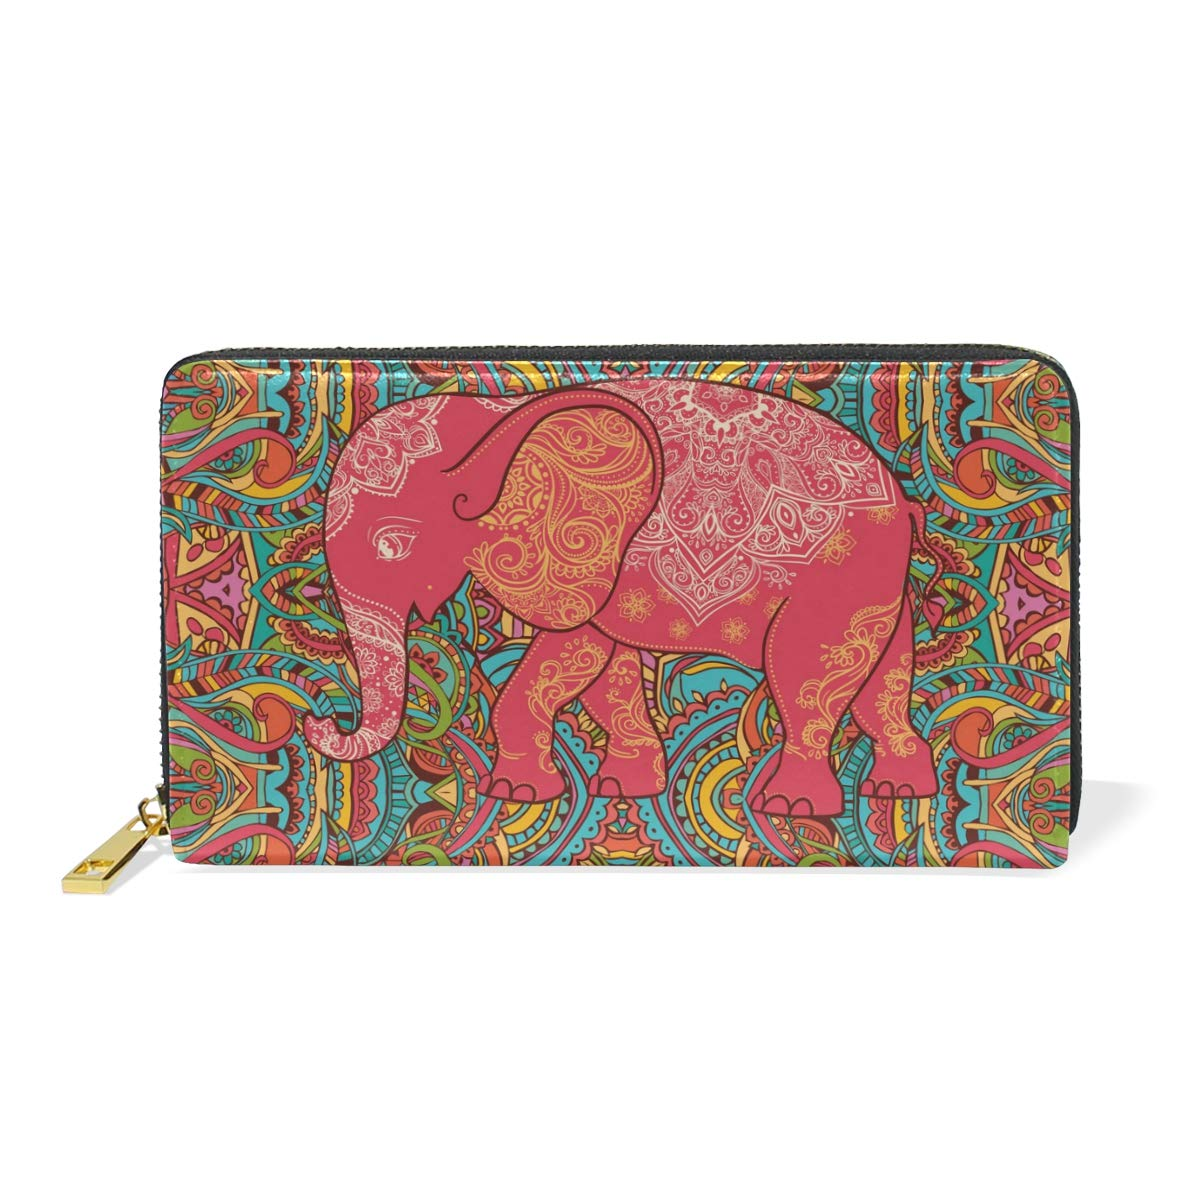 color3 Genuine Leather Womens Around Zip Wallet Elephant colorful Purse Clutch Card Holder for Girl